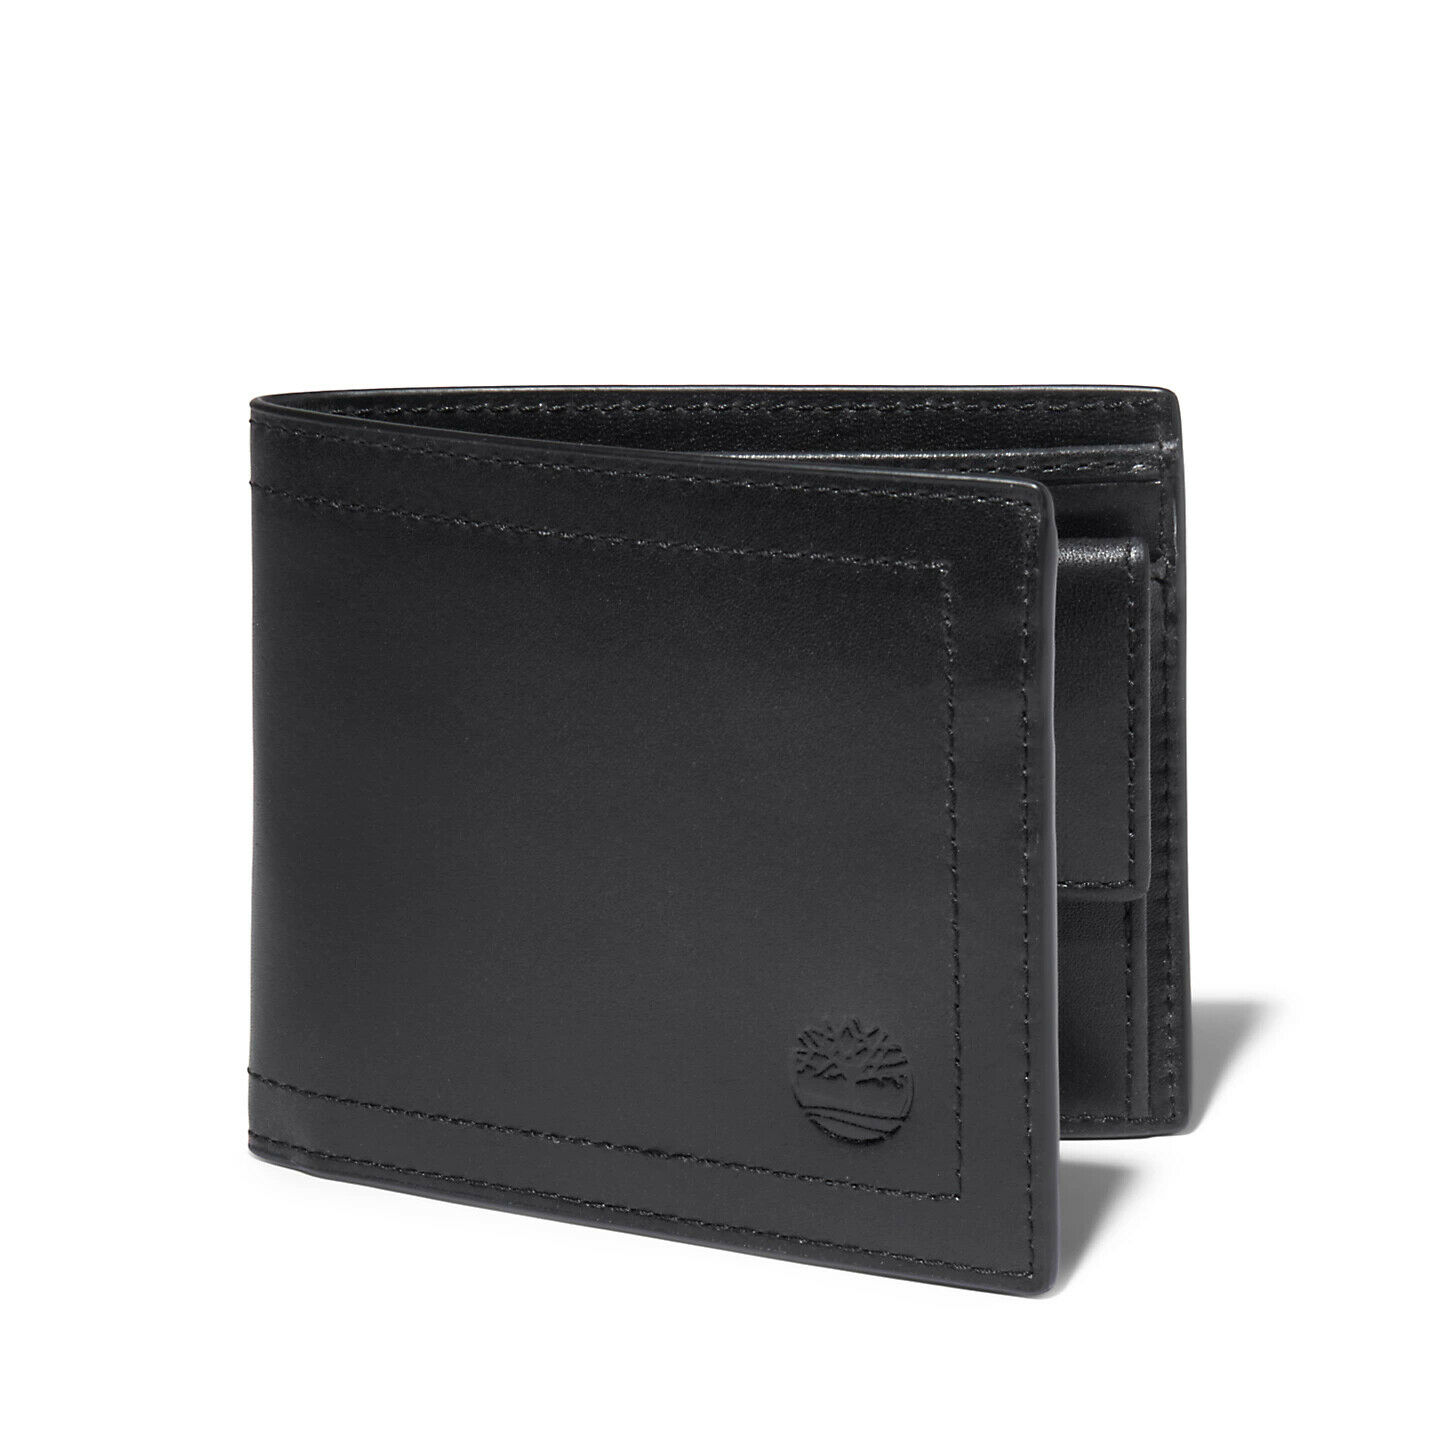 Timberland Mens Garwin Billfold Leather Wallet with Coin Pocket